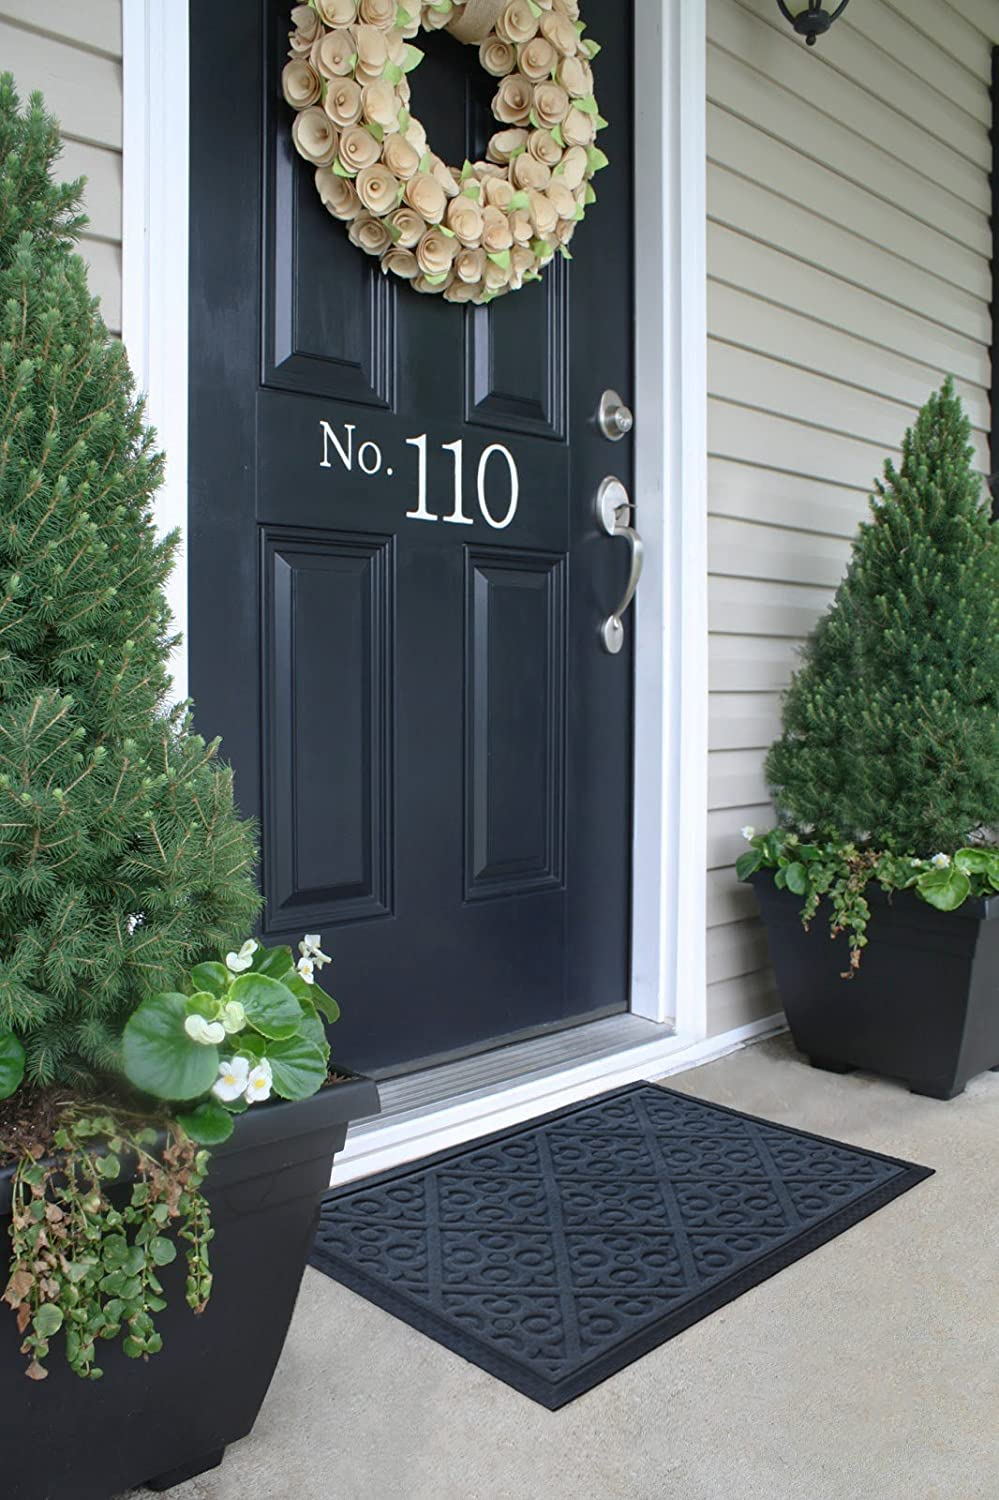 Amazon.com : Alpine Neighbor Door Mat | Washable Indoor/Outdoor ...